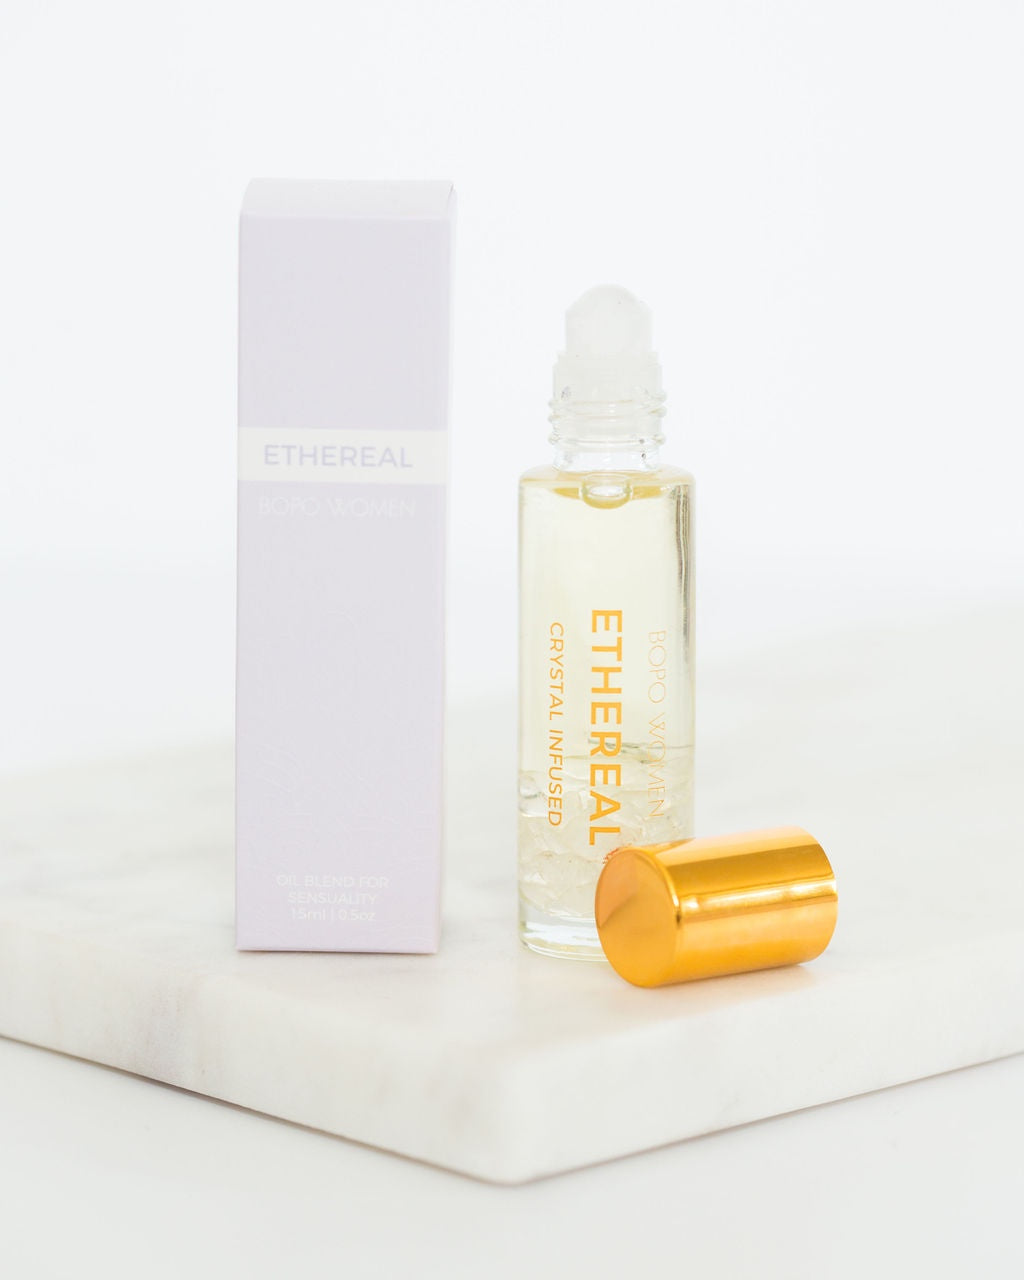 Ethereal Perfume Roller